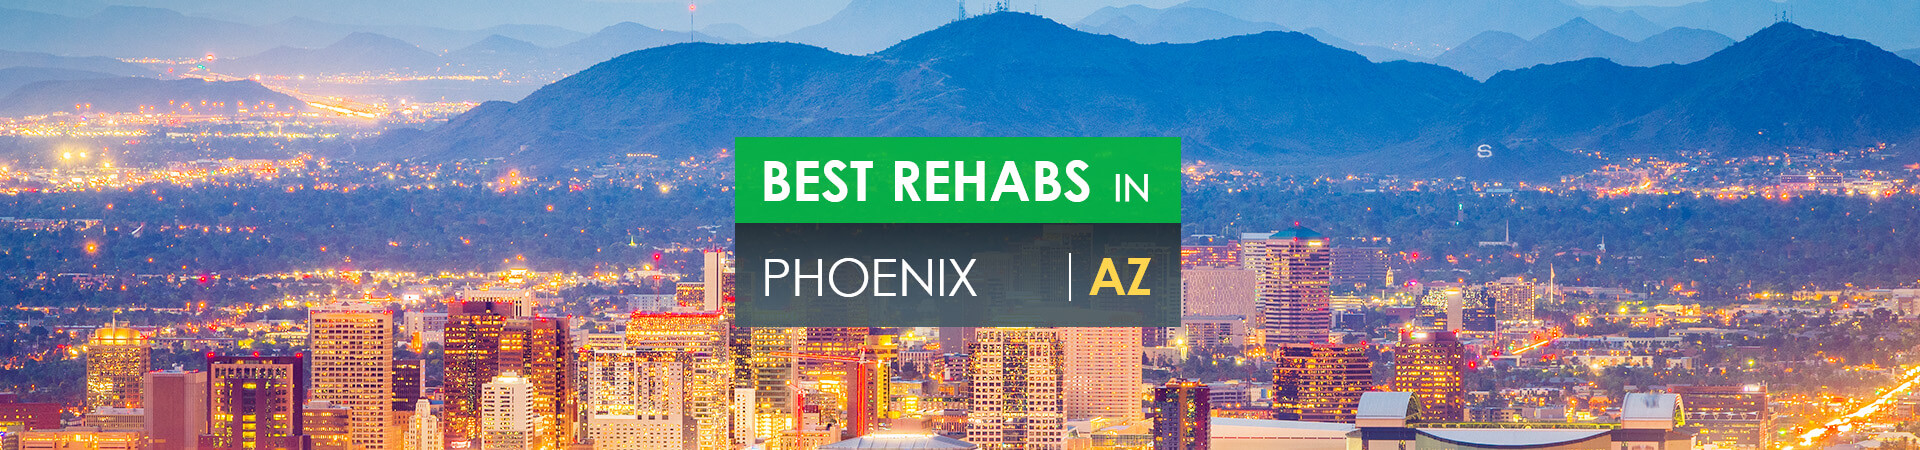 Best rehabs in Phoenix, AZ